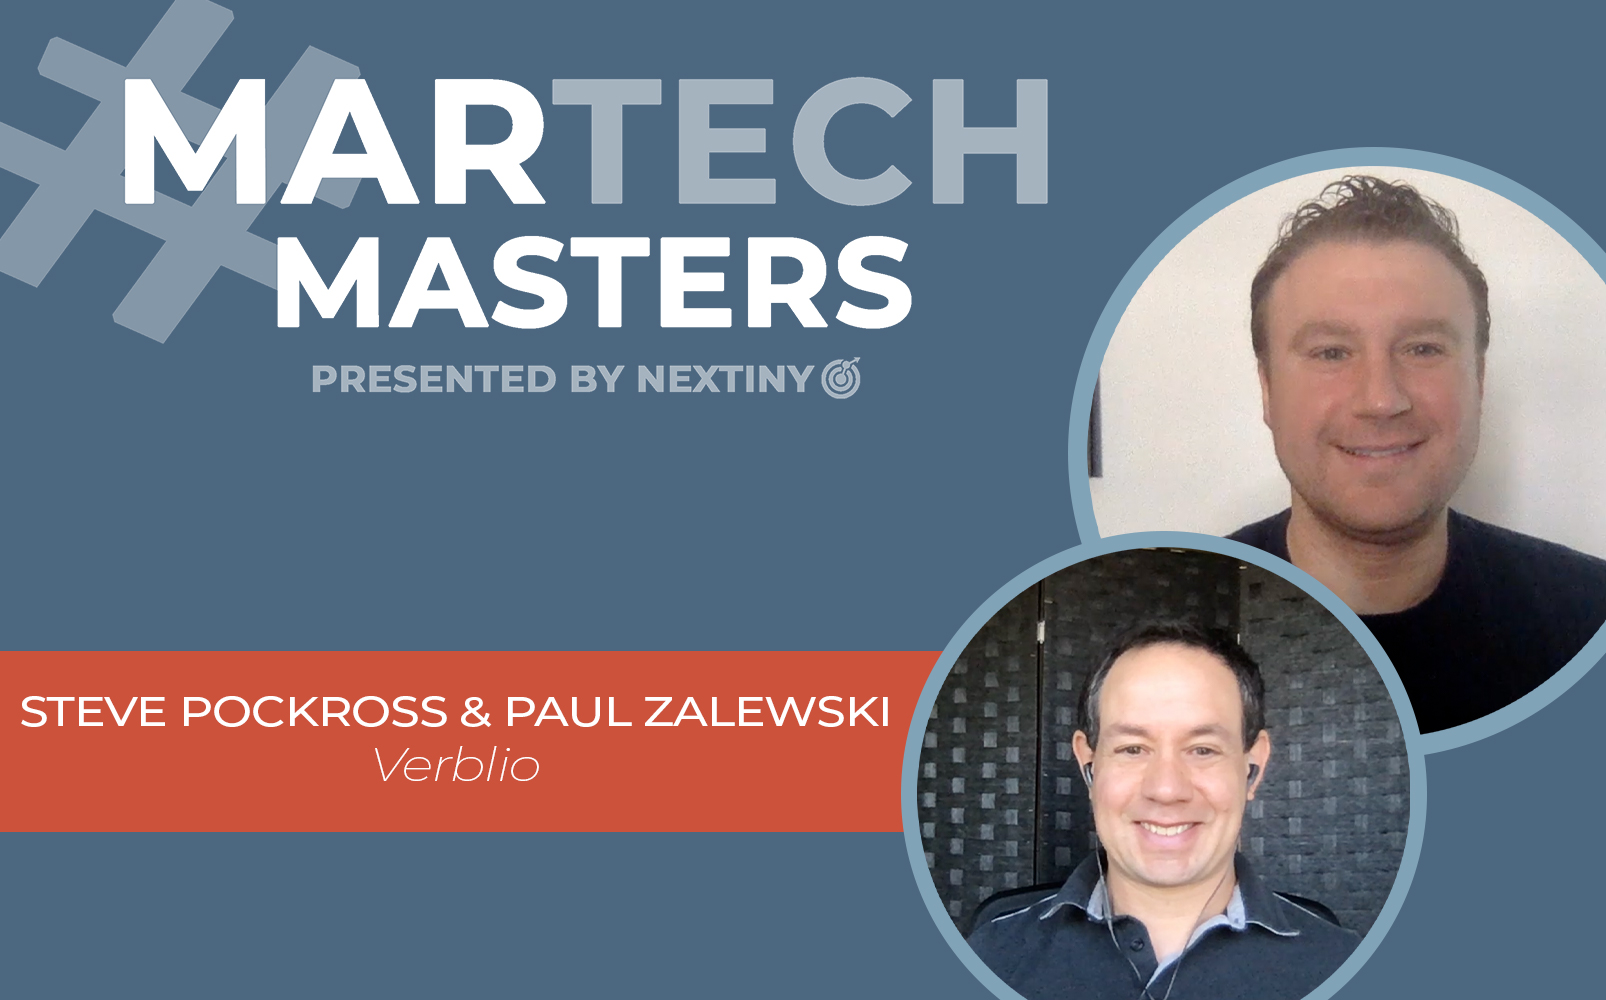 martech masters verblio content strategy